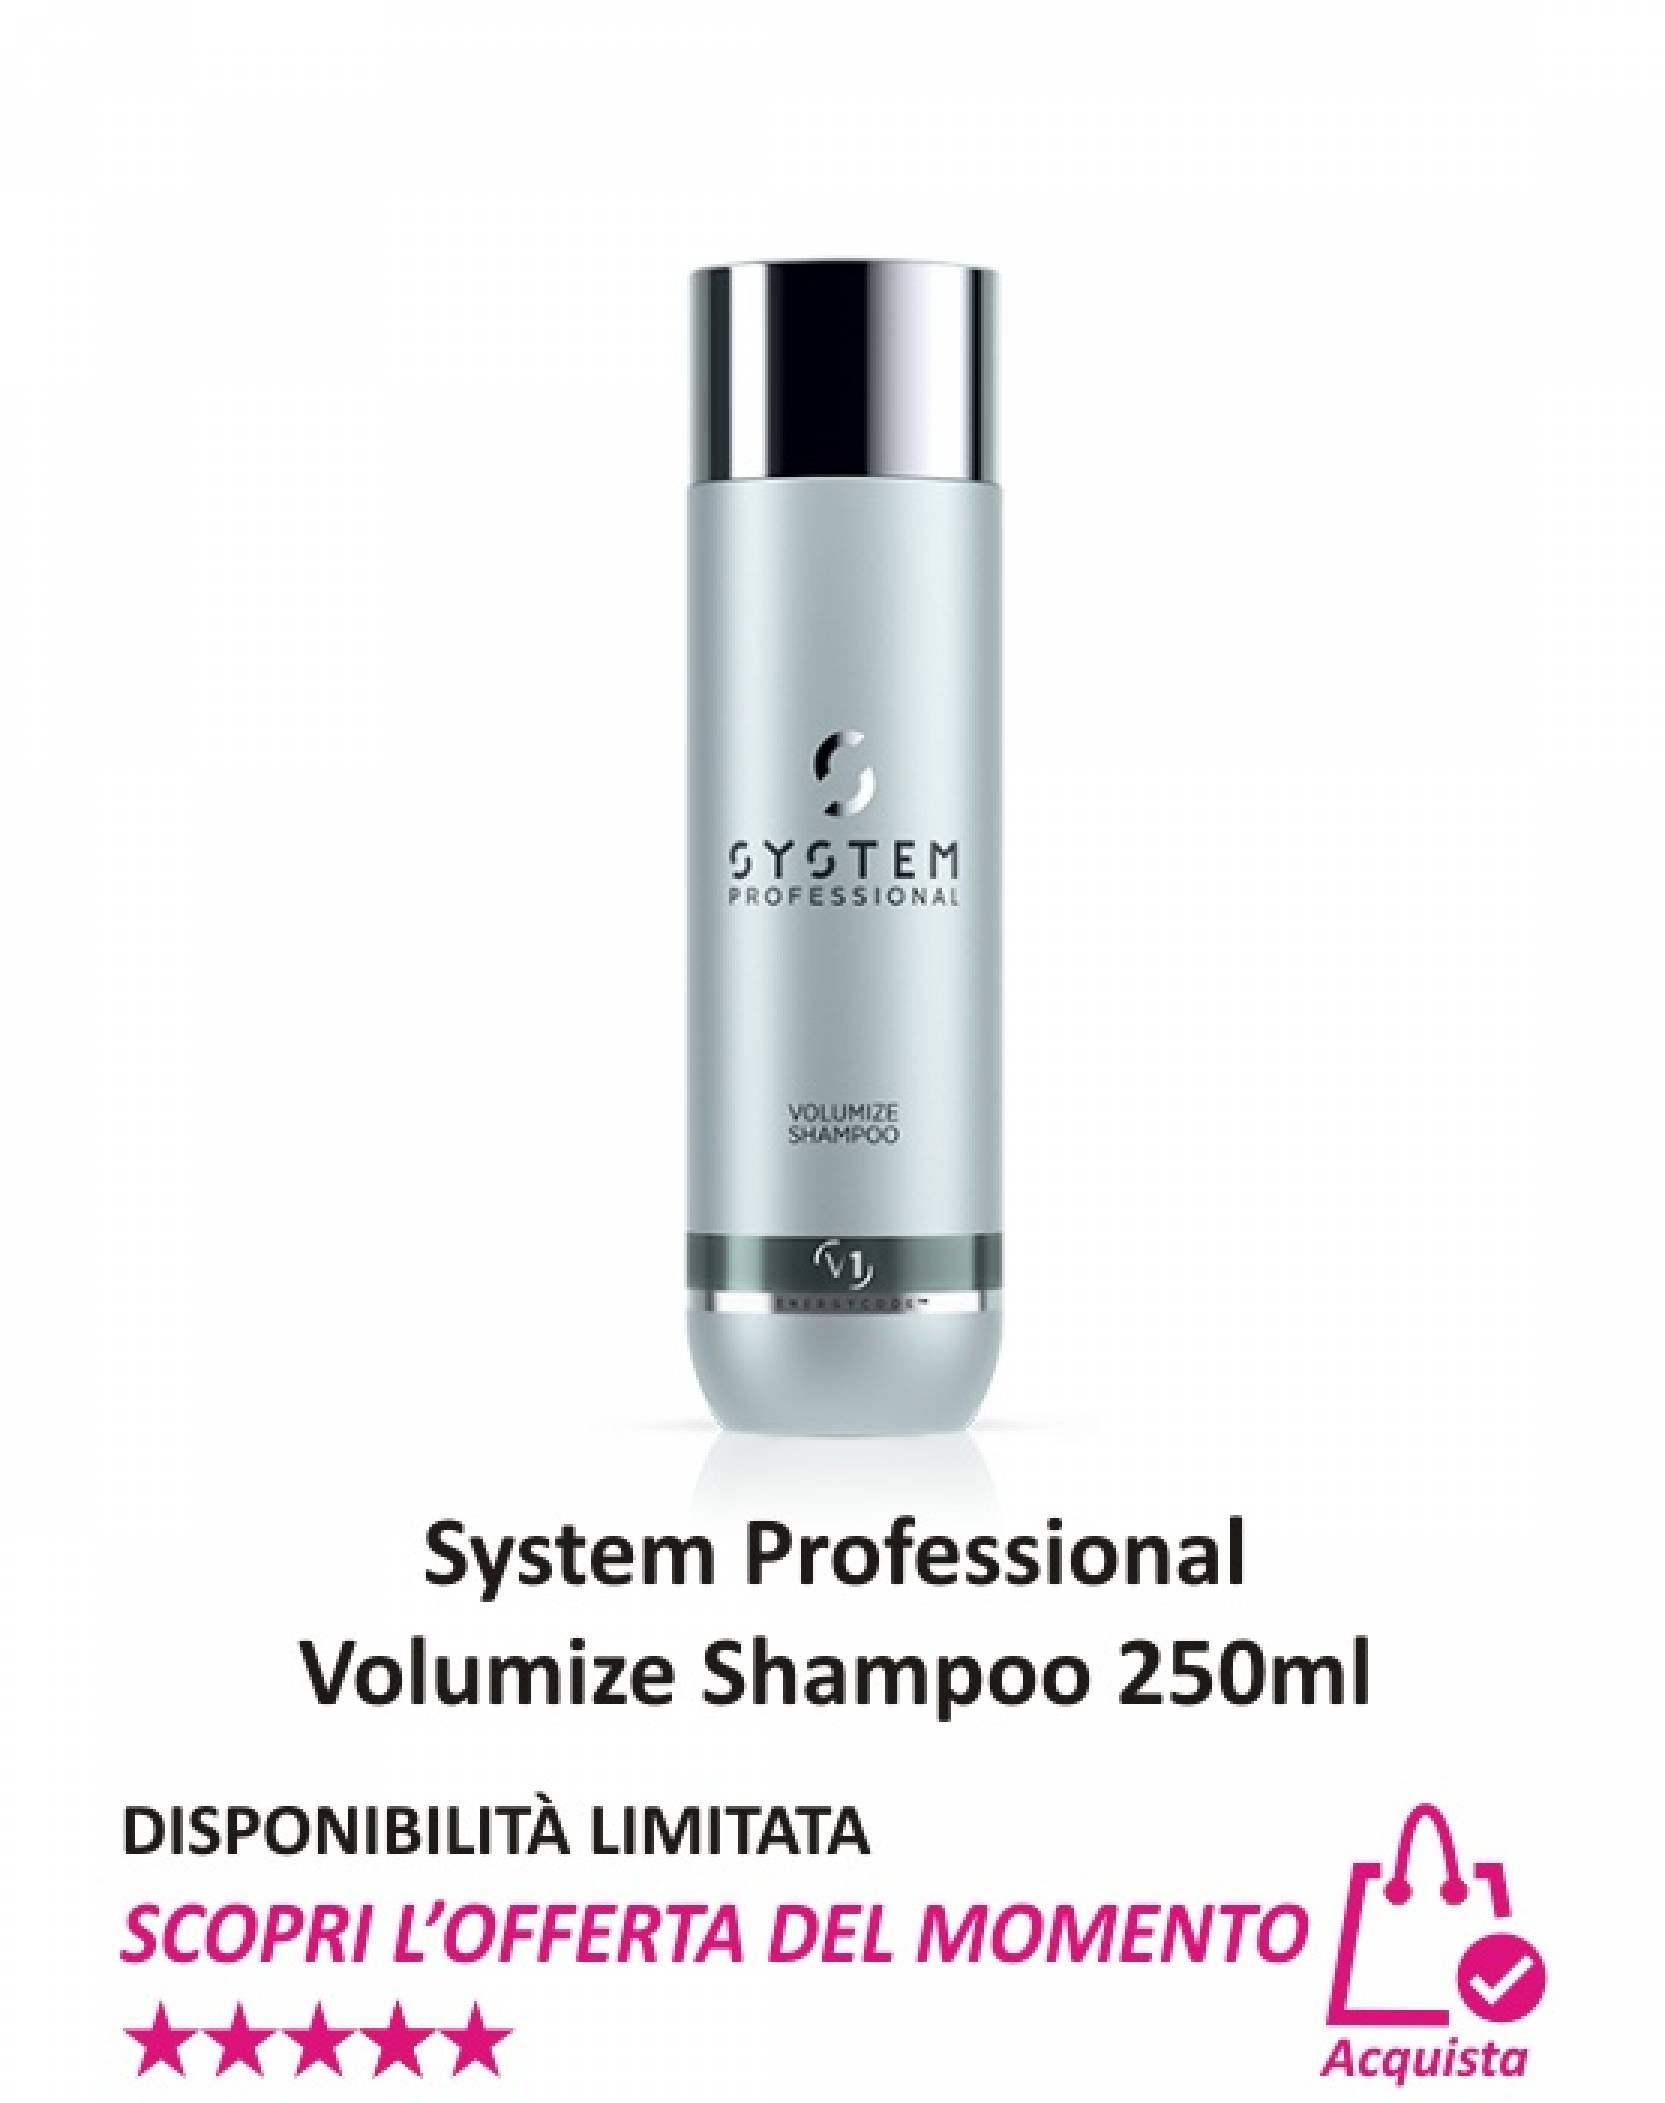 System Professional Volumize Shampoo 250 ml